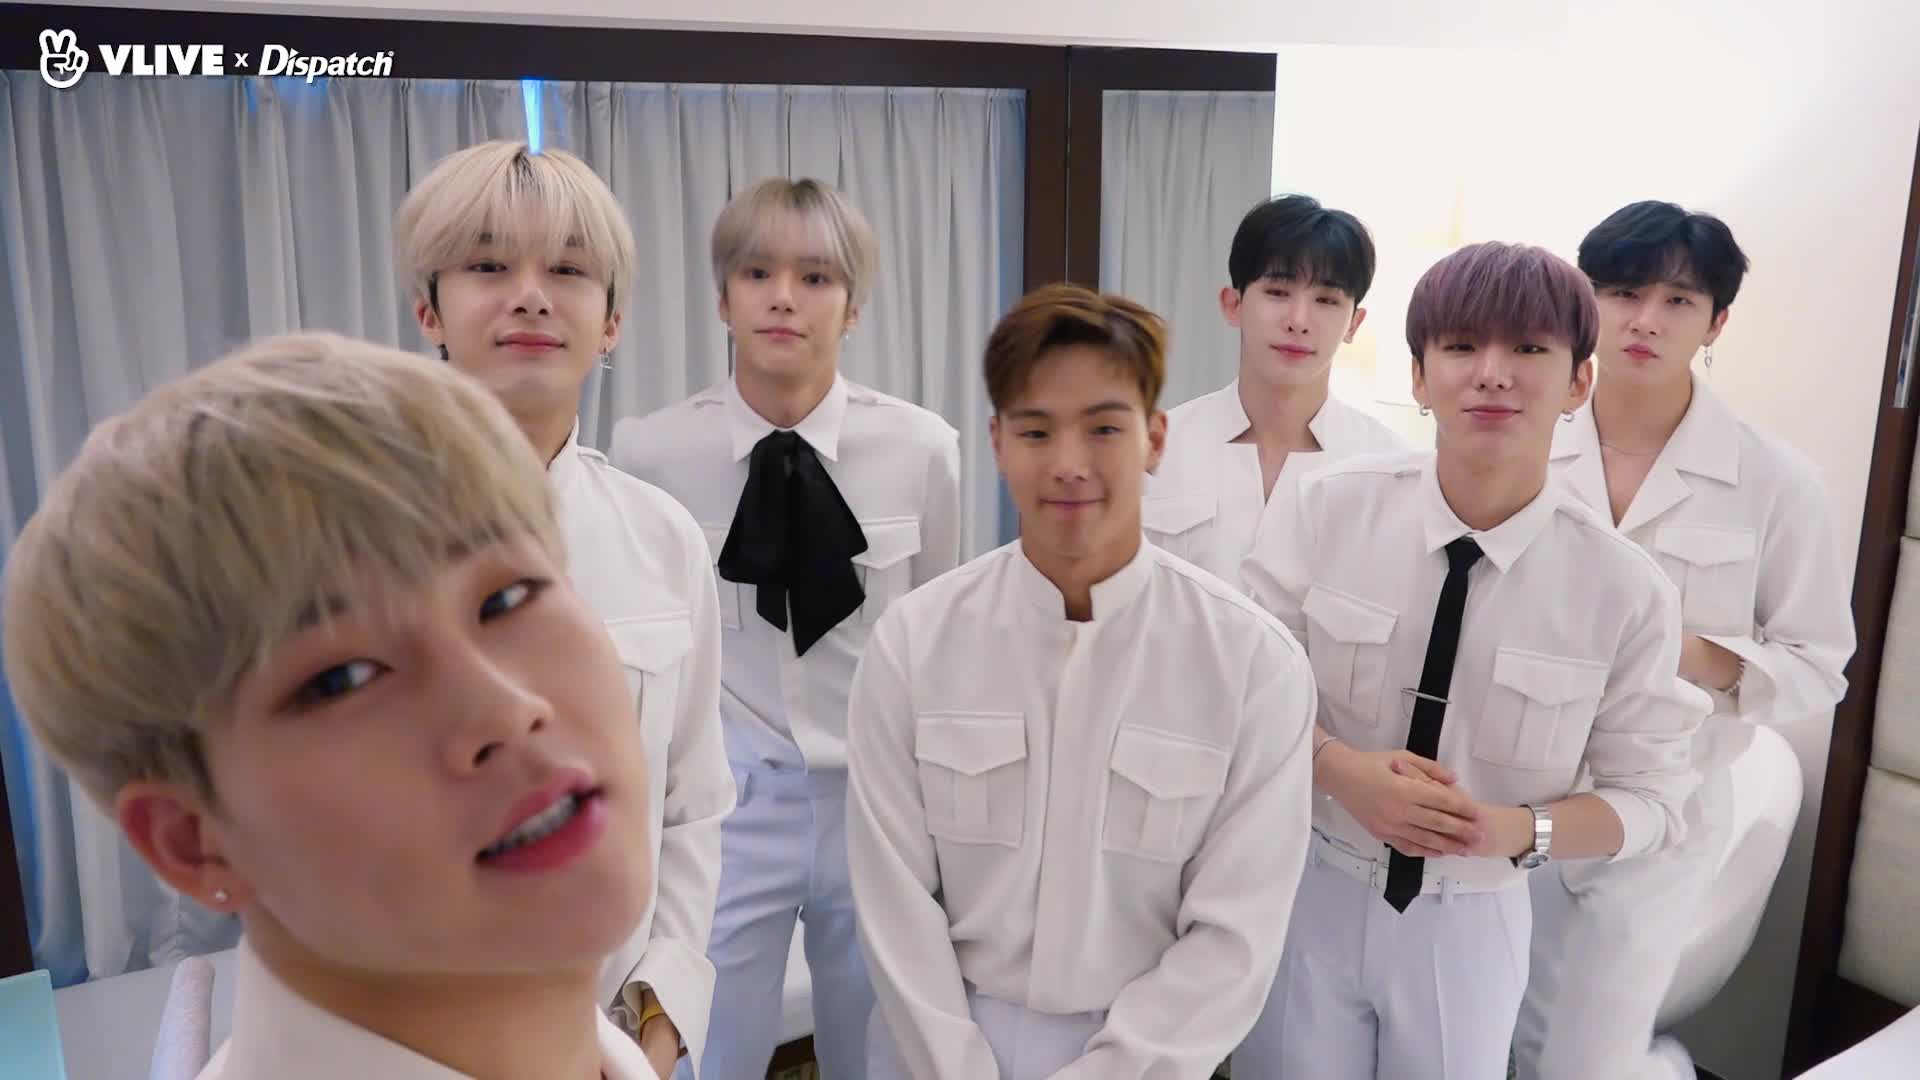 Welcome Opening for 'V Dispatch' 몬스타엑스 (MONSTA X)